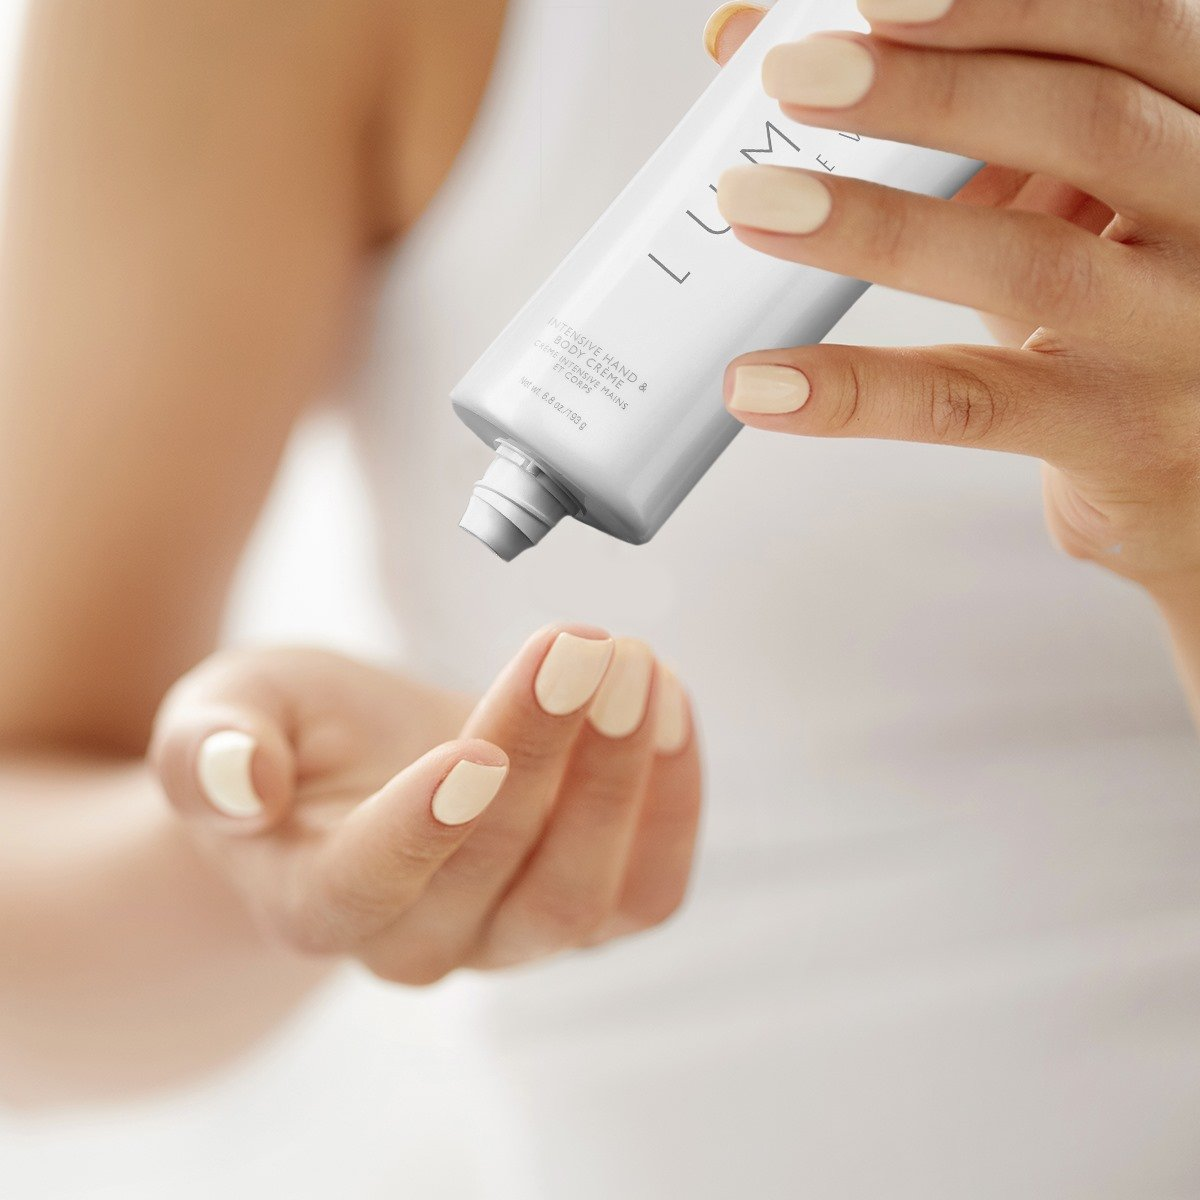 6 Tips for Smooth, Soft Hands